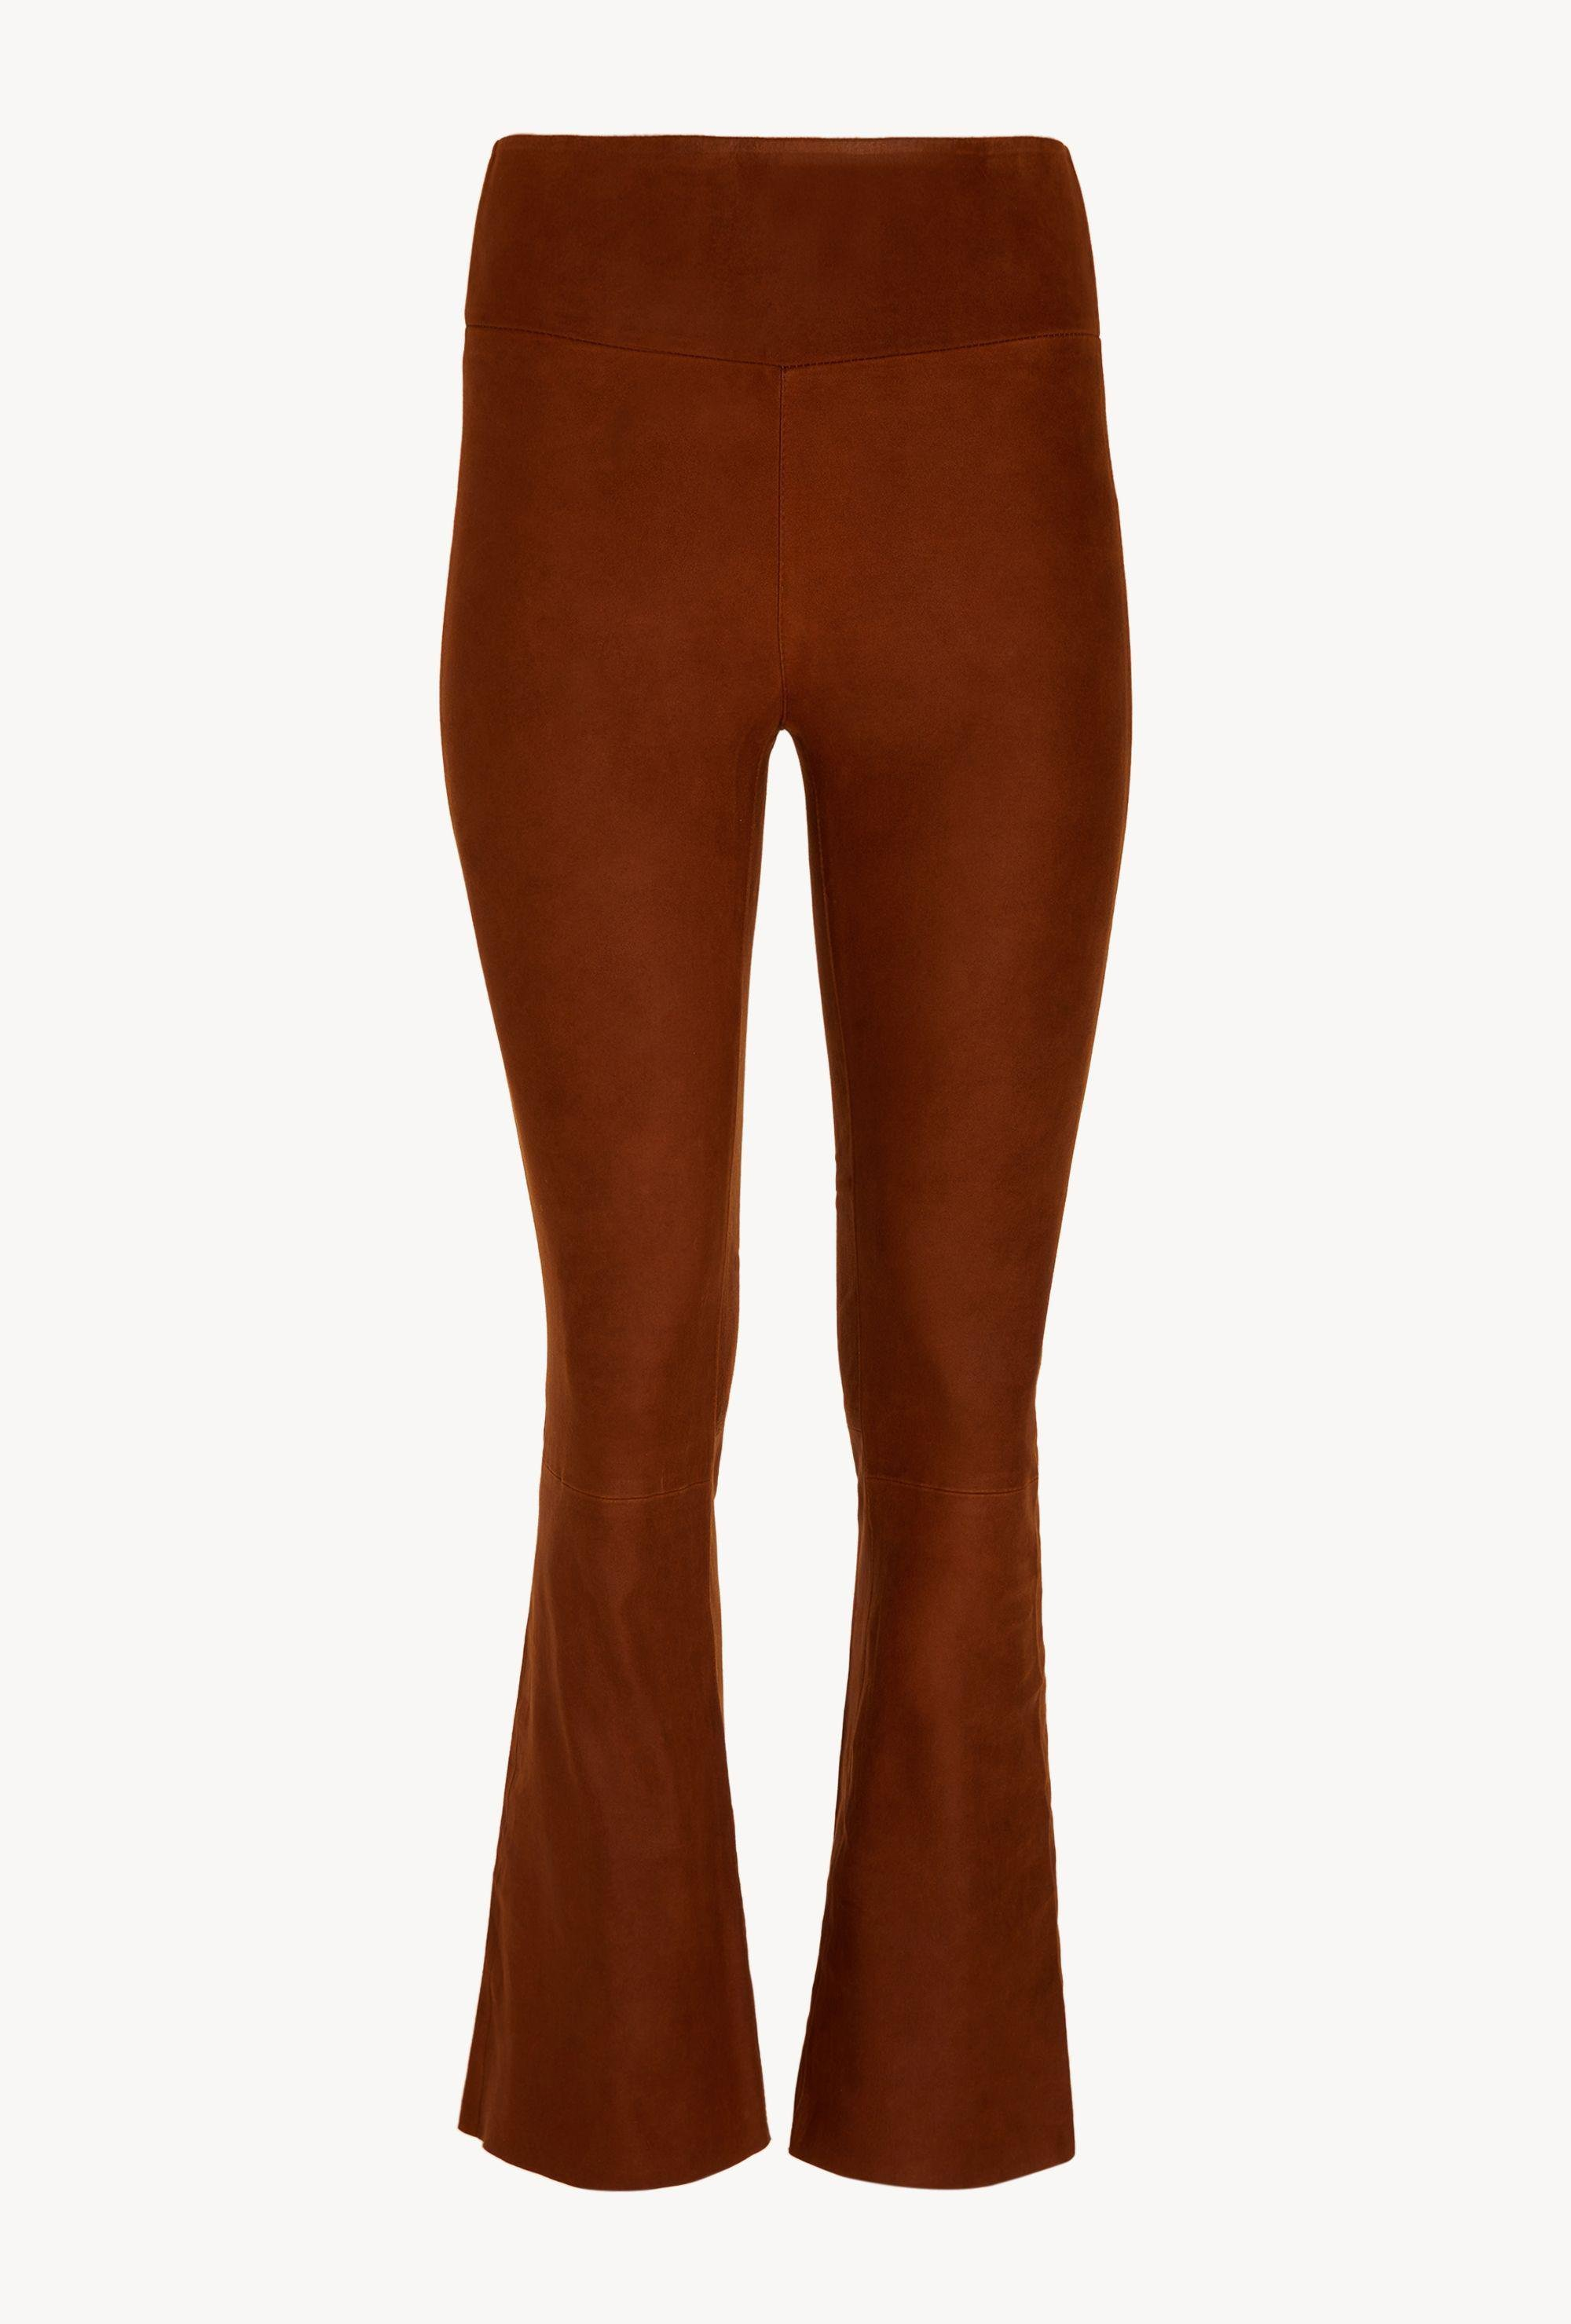 Cognac Coated Ankle Flare Leather Legging